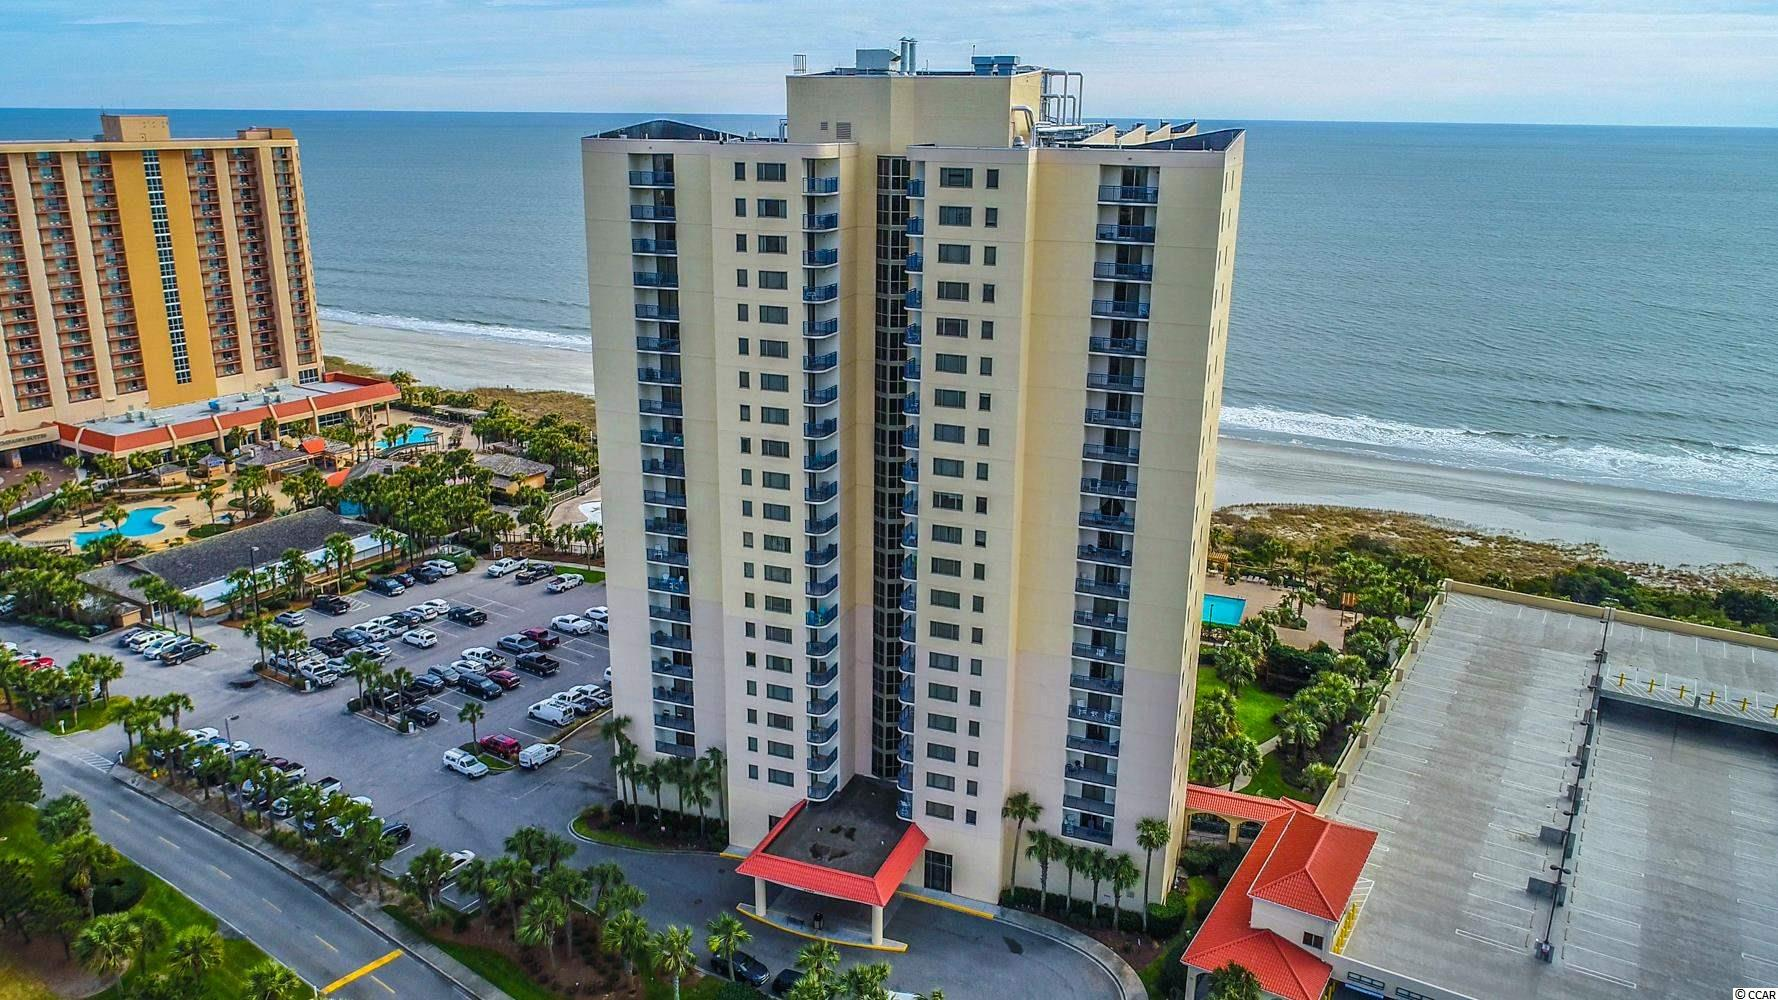 Oceanfront 2BR/2BA corner unit in the Brighton Towers at Kingston Plantation. Amazing ocean views from this wrap around balcony, located on the first level of condos in the building for a super convenient location but well above the actual ground level. Sold completely furnished with upscale interiors, granite countertops, tile and wood flooring. Brighton is a great building, excellent as a primary residence, second home or vacation rental. Located with the gated Kingston Plantation community, tons of amenities for the entire family to enjoy. Jump on this one for the summer!